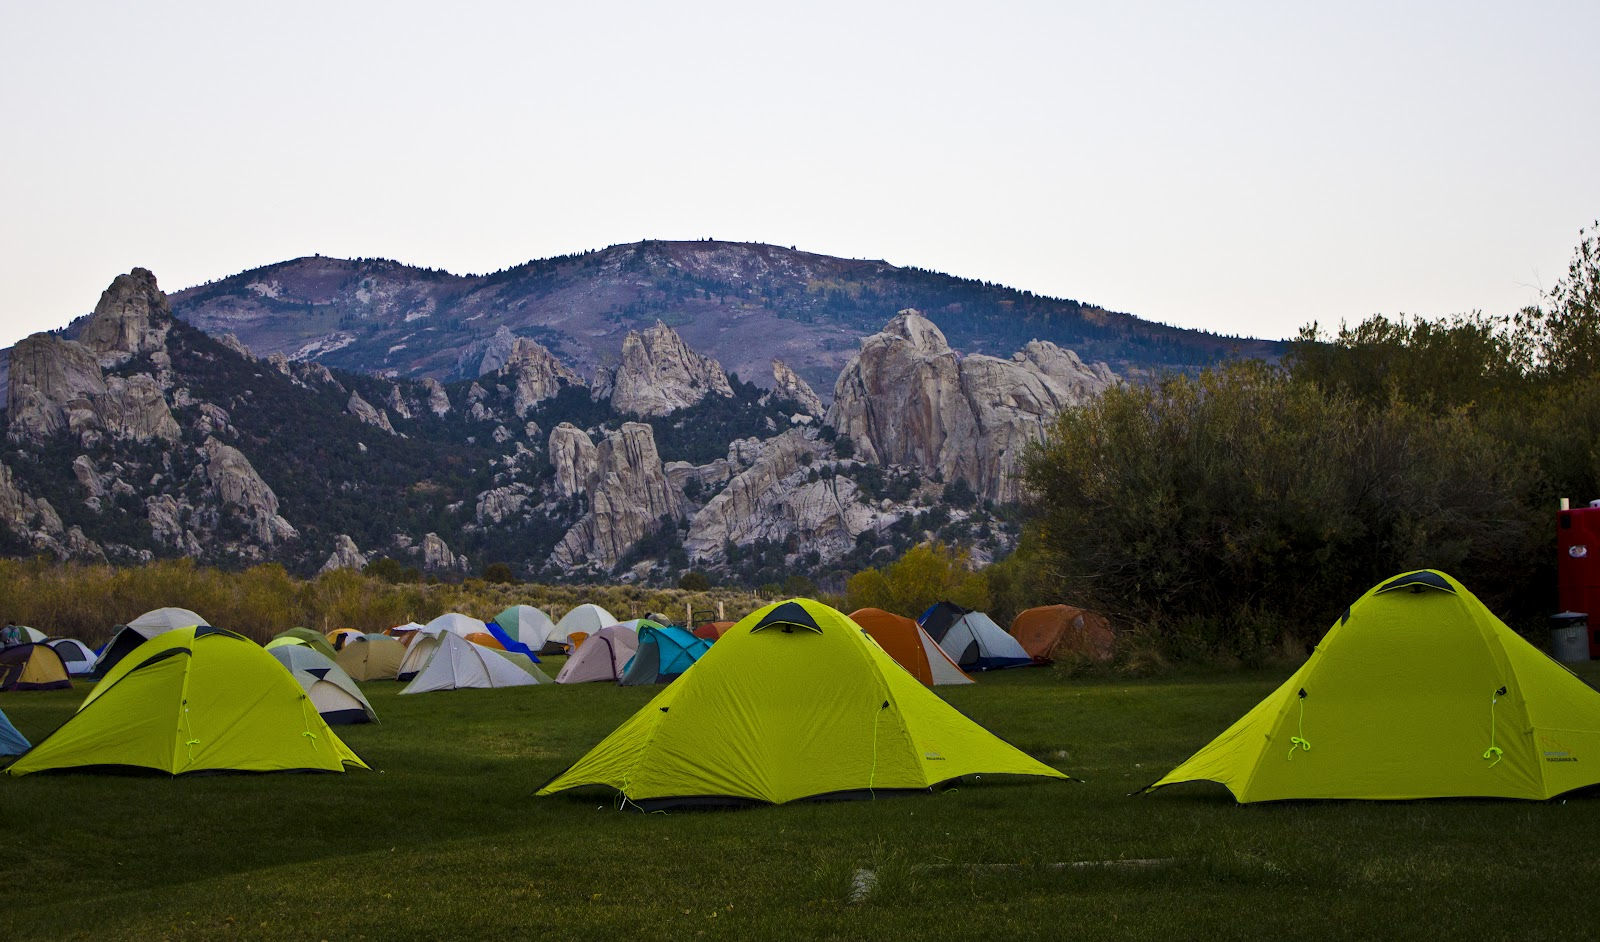 The staff and sponsors at the festival definitely kept our stomachs full and our mouths happy with all the free breakfasts and dinners for the all-inclusive ... & Liberty Mountain Climbing: Our Trip To The Idaho Mountain Festival